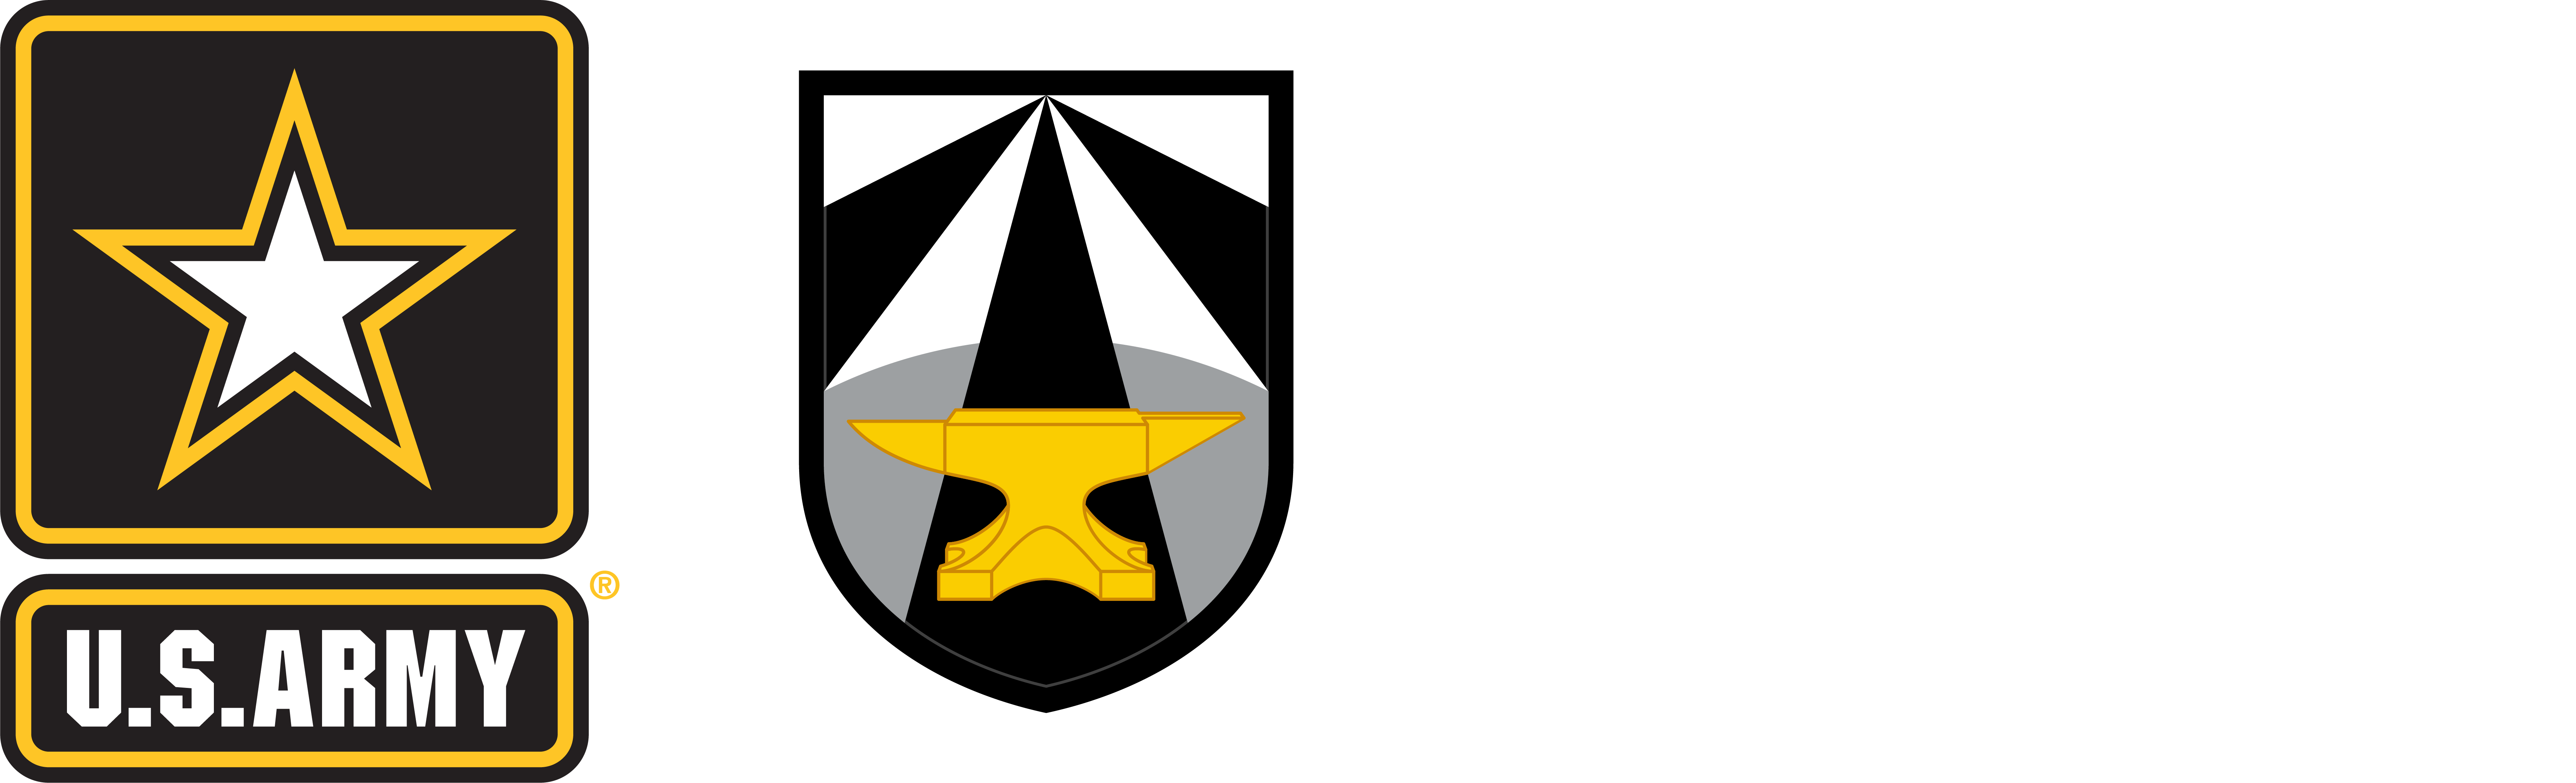 Home - Army Futures Command